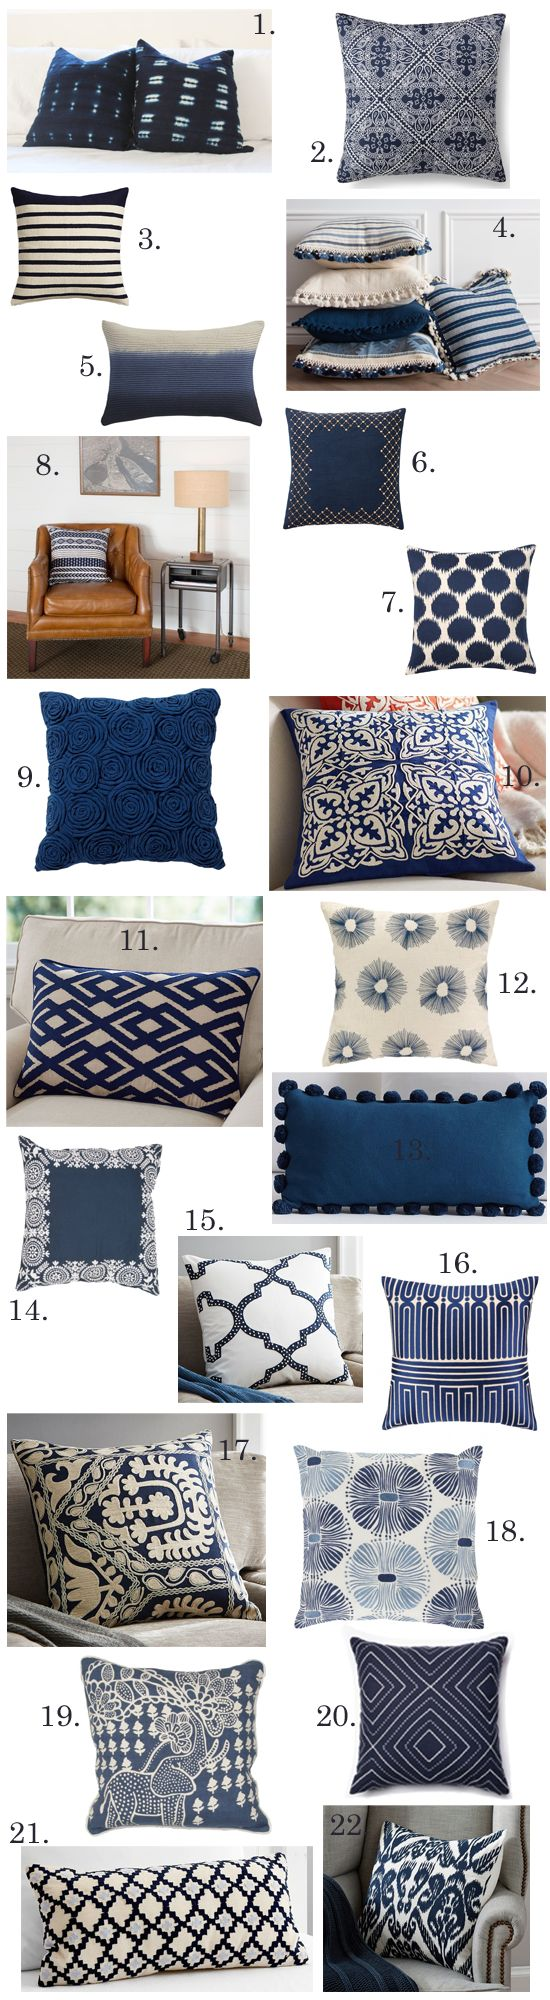 naby blue throw pillows master bedroom makeover #decor_pillows_blue